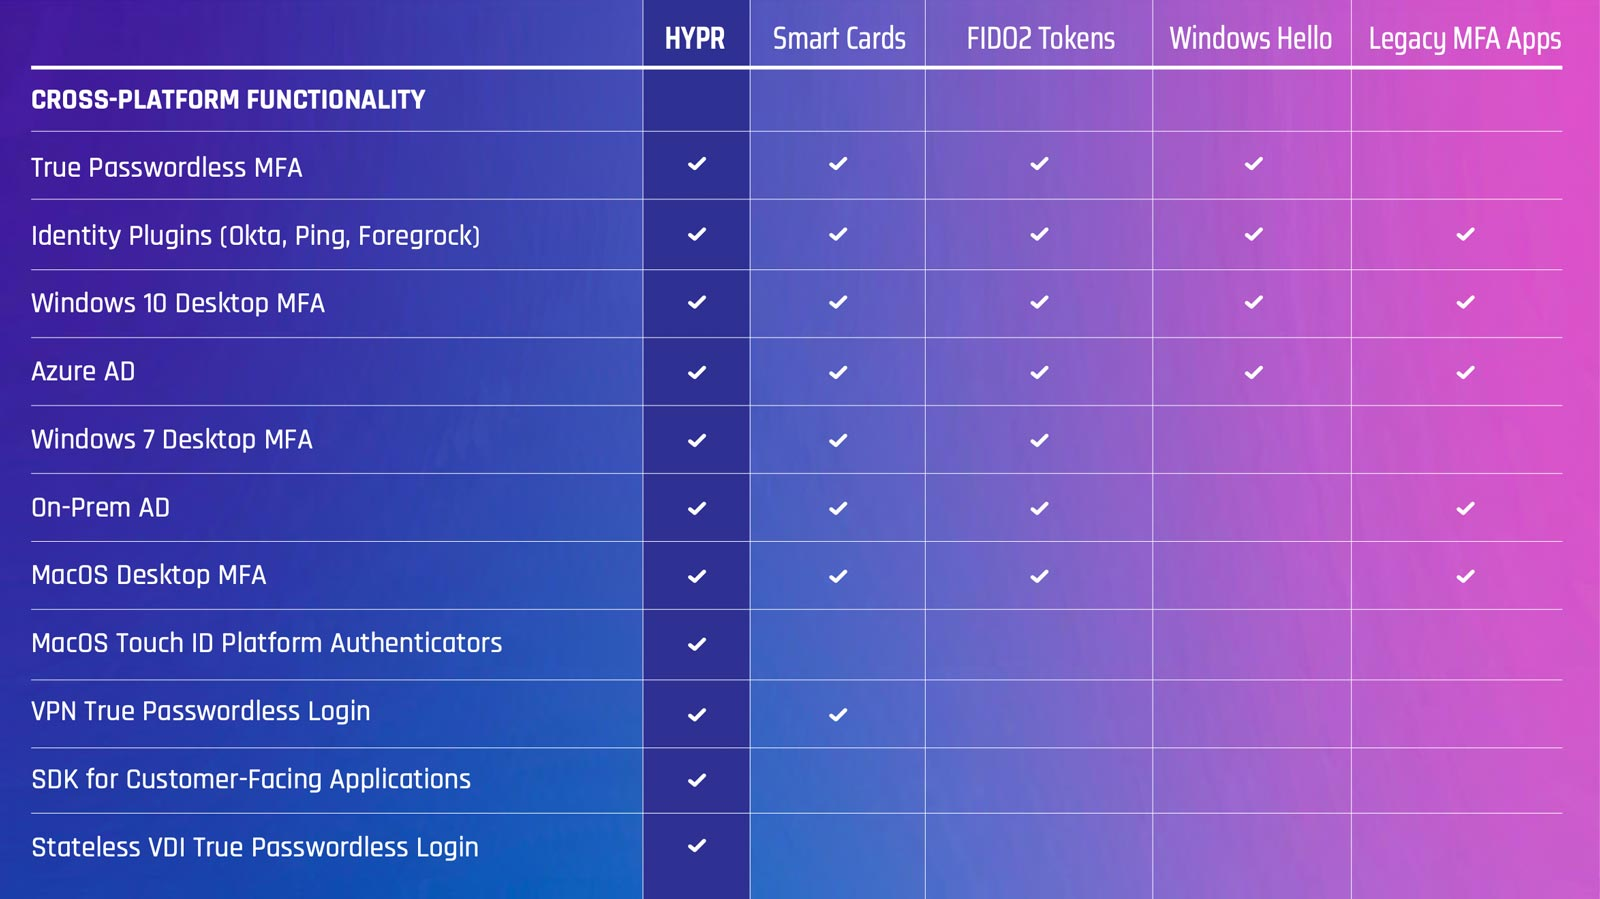 HYPR vs Alternative Passwordless Login Methods Comparison